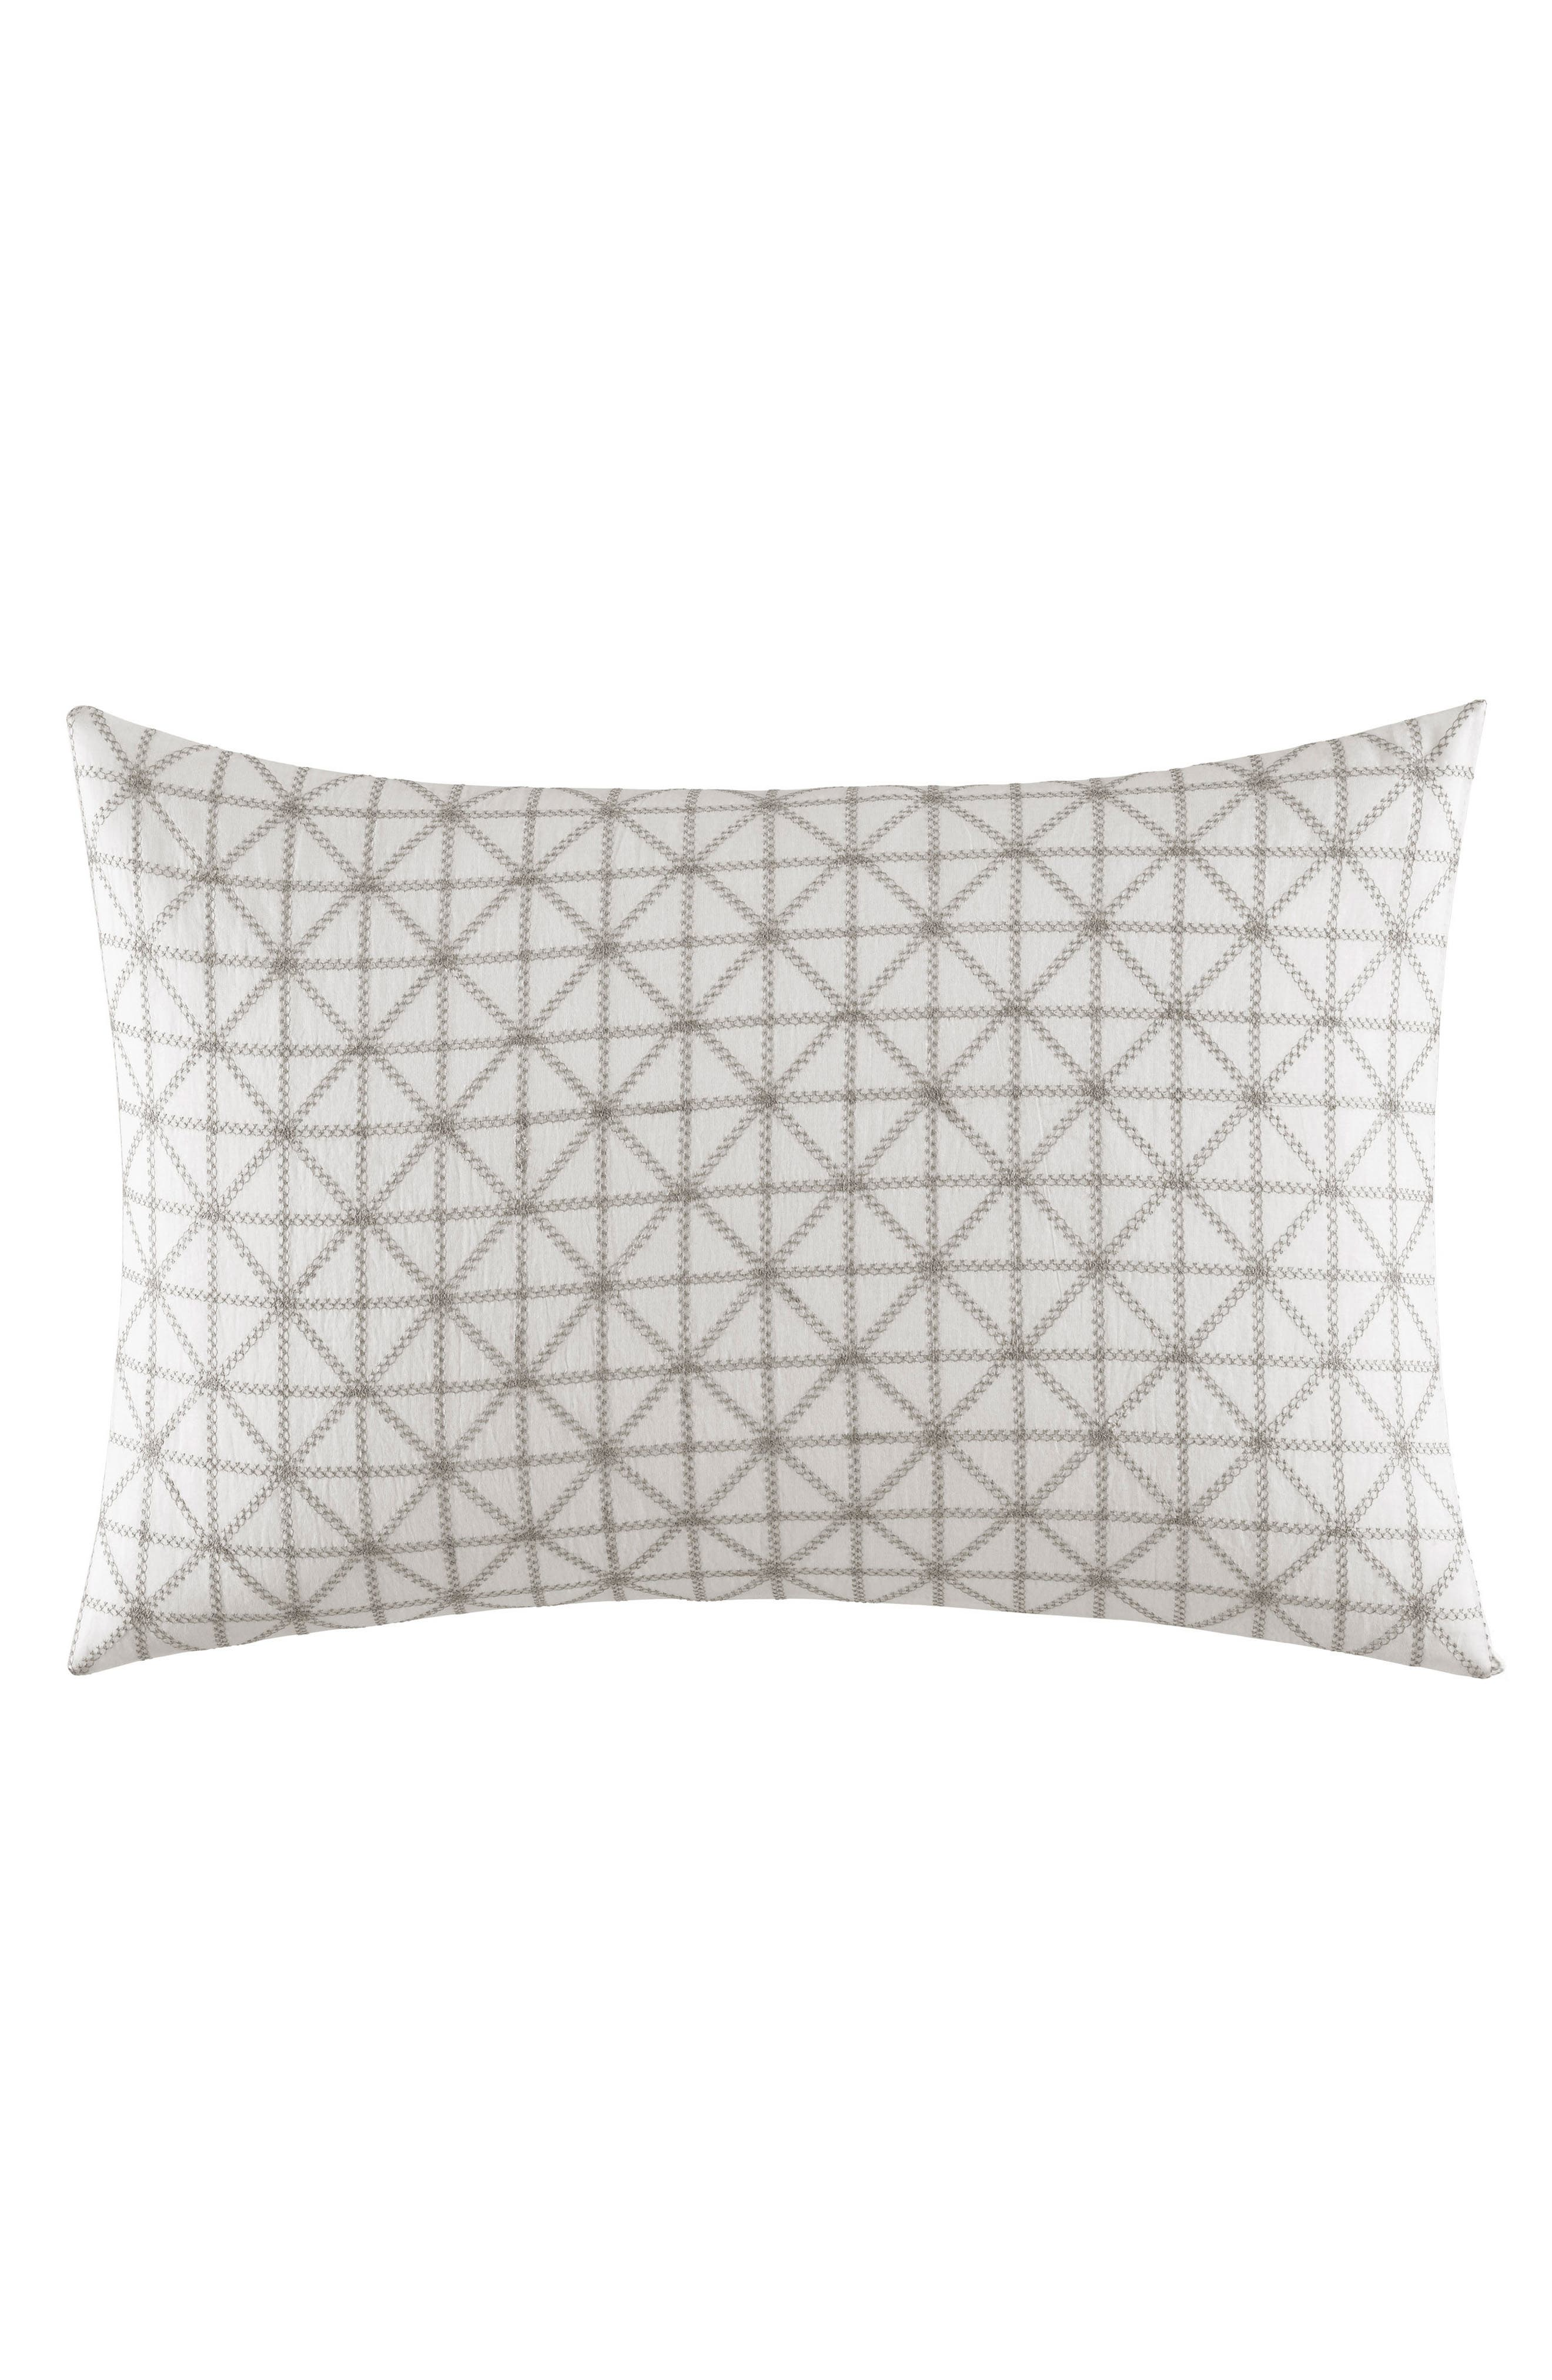 Main Image - Vera Wang Mirrored Breakfast Accent Pillow